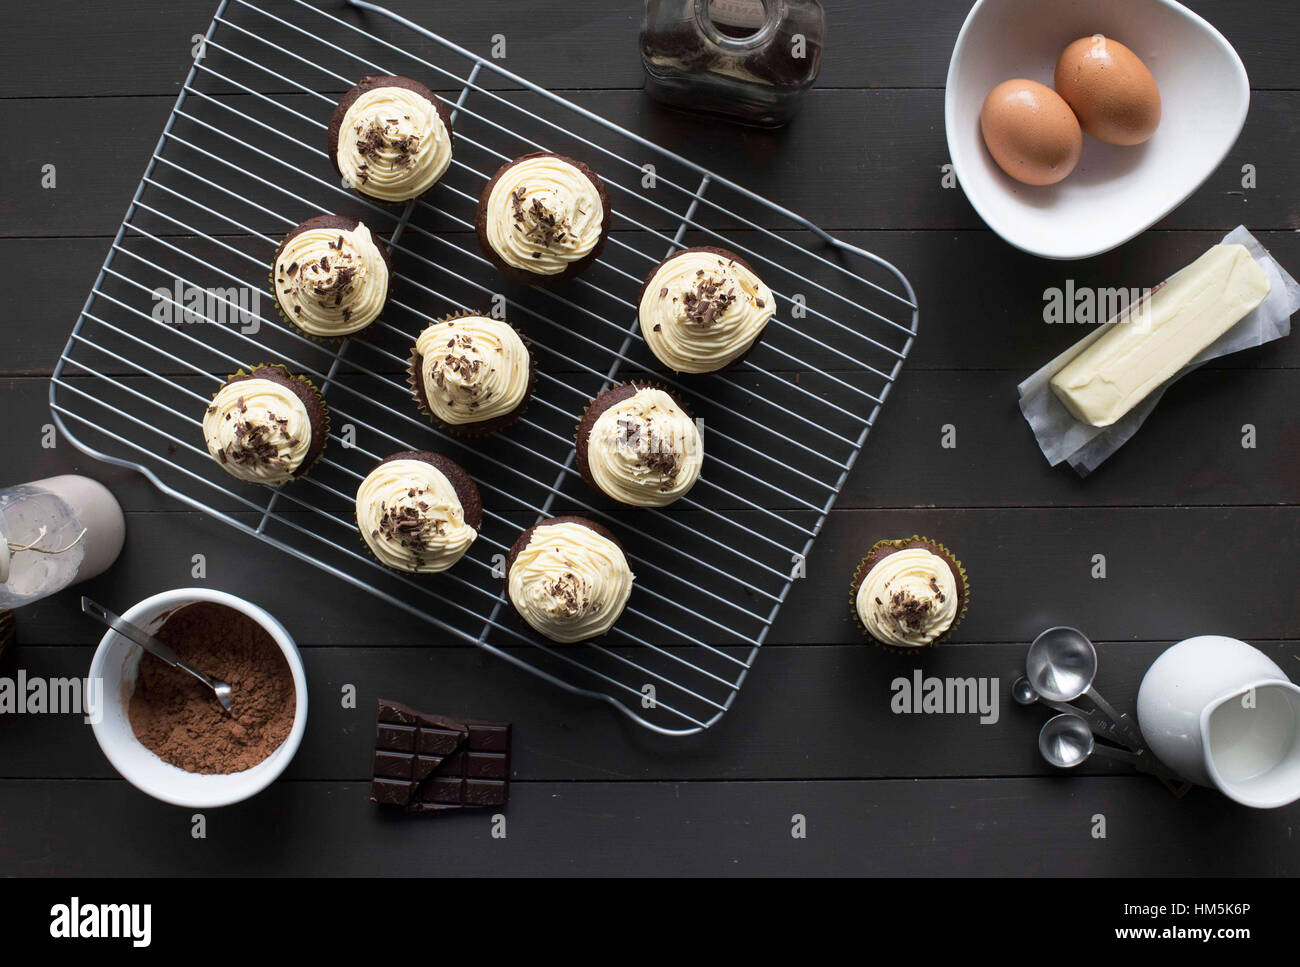 High angle view of cupcakes with eggs on table - Stock Image